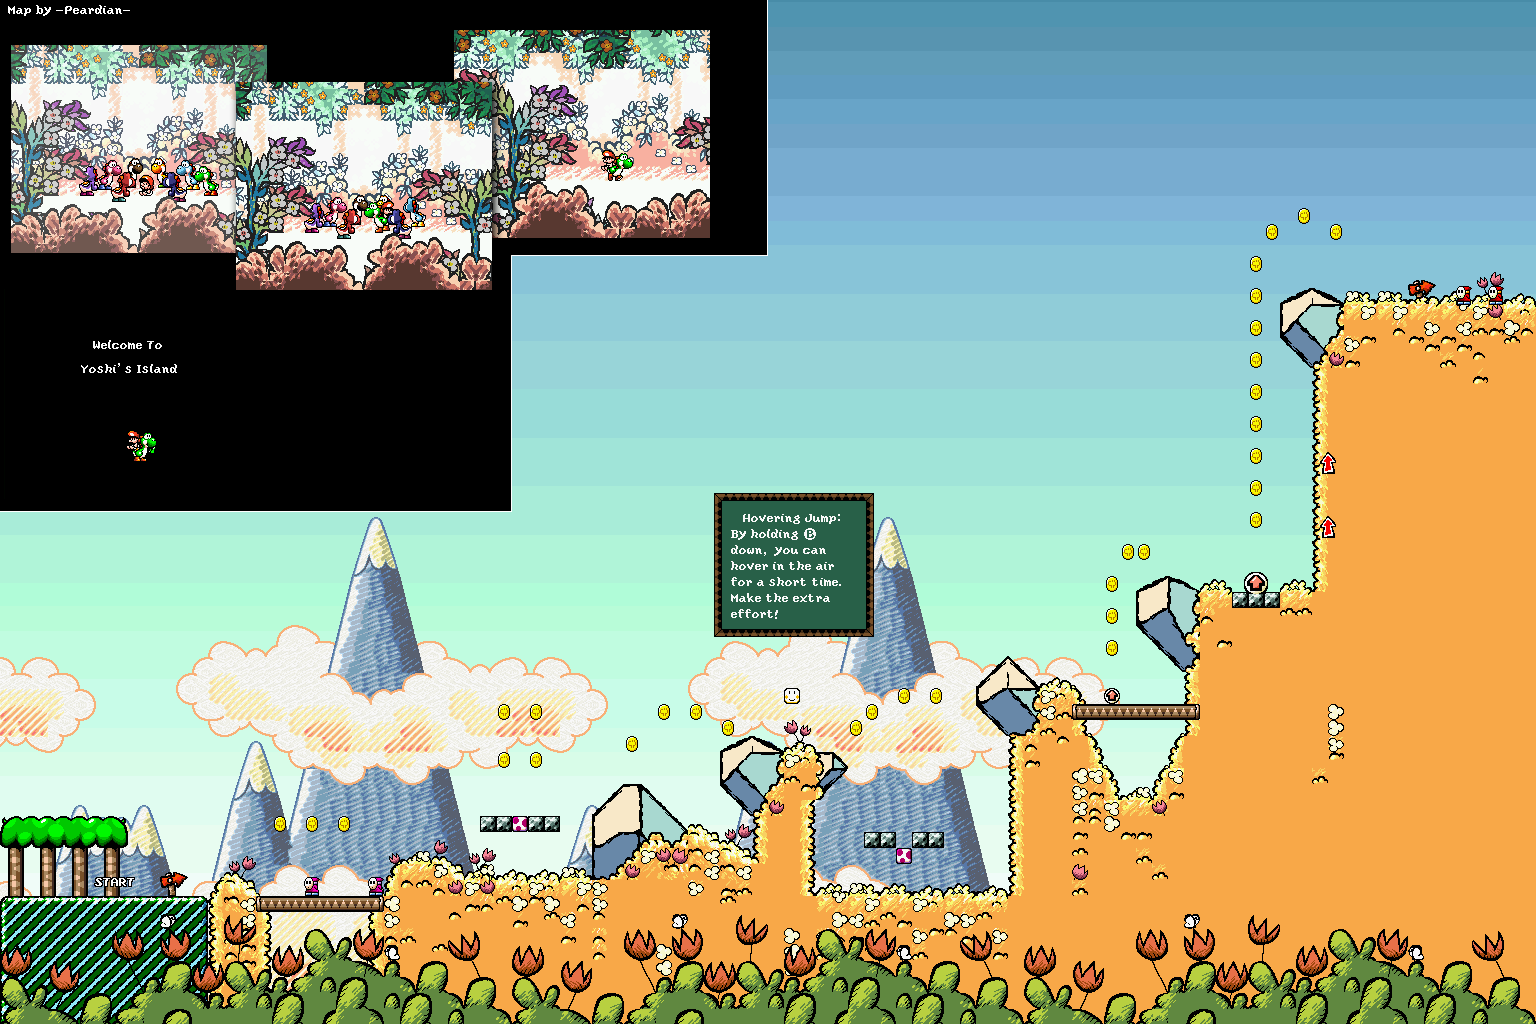 Super mario world 2 yoshis island game maps yoshis island world0 welcome to yoshis island gumiabroncs